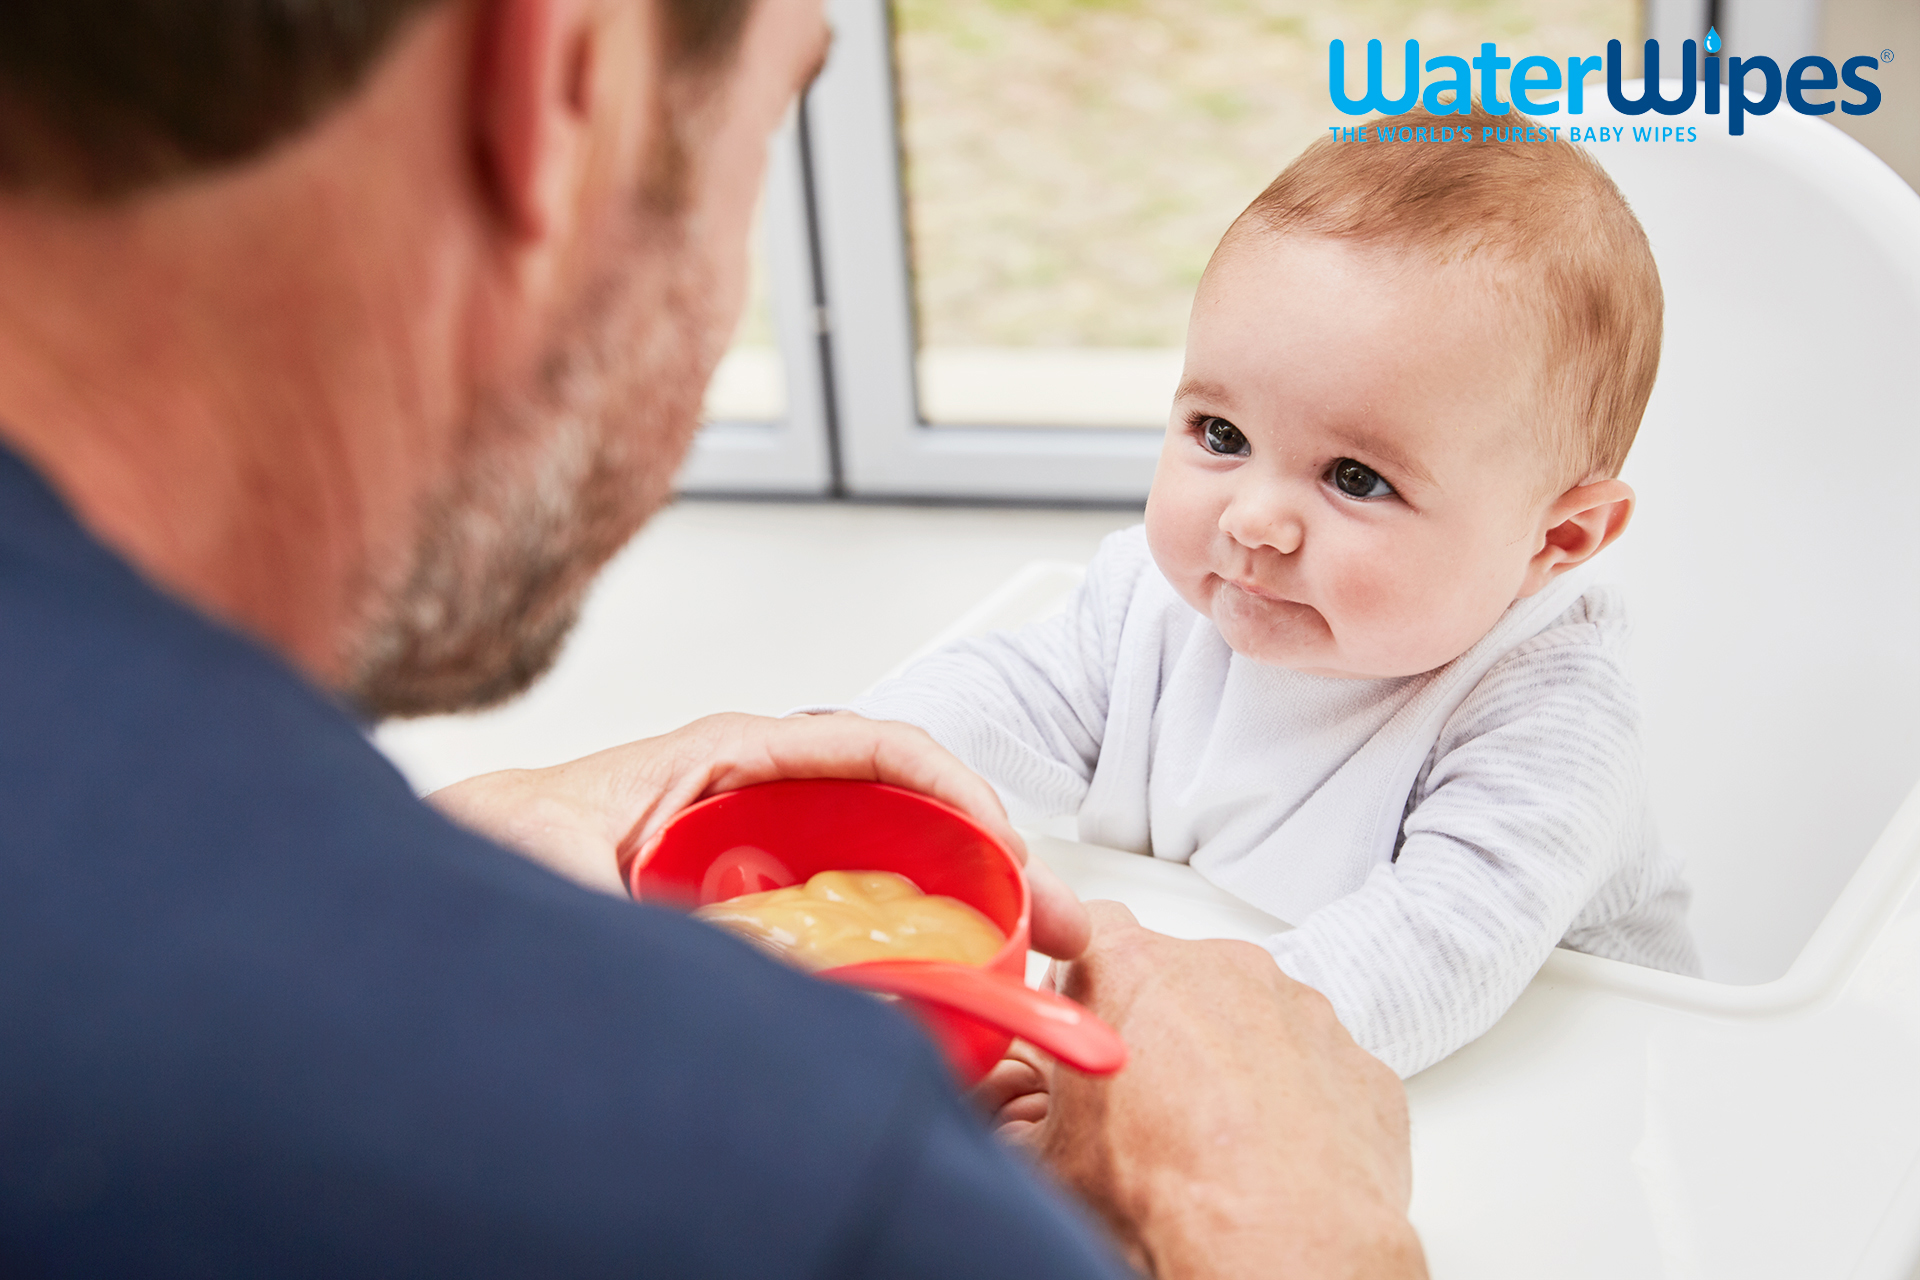 WaterWipes daddy feeding baby Emma Tunbridge